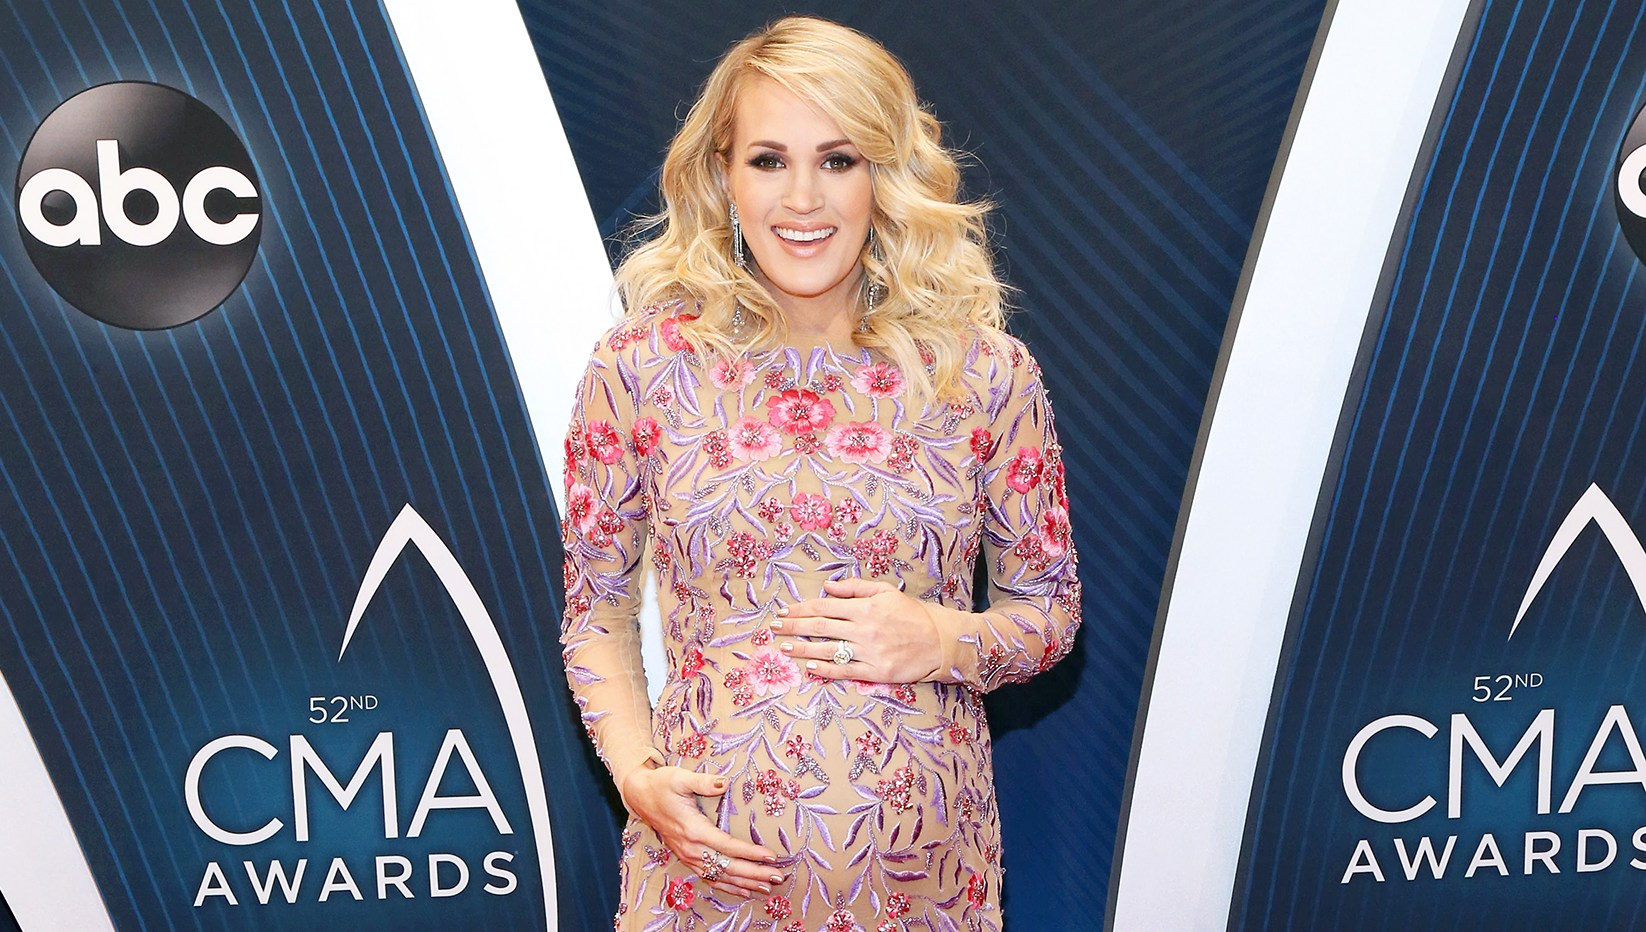 Carrie Underwood Baby Bump CMAs 2018